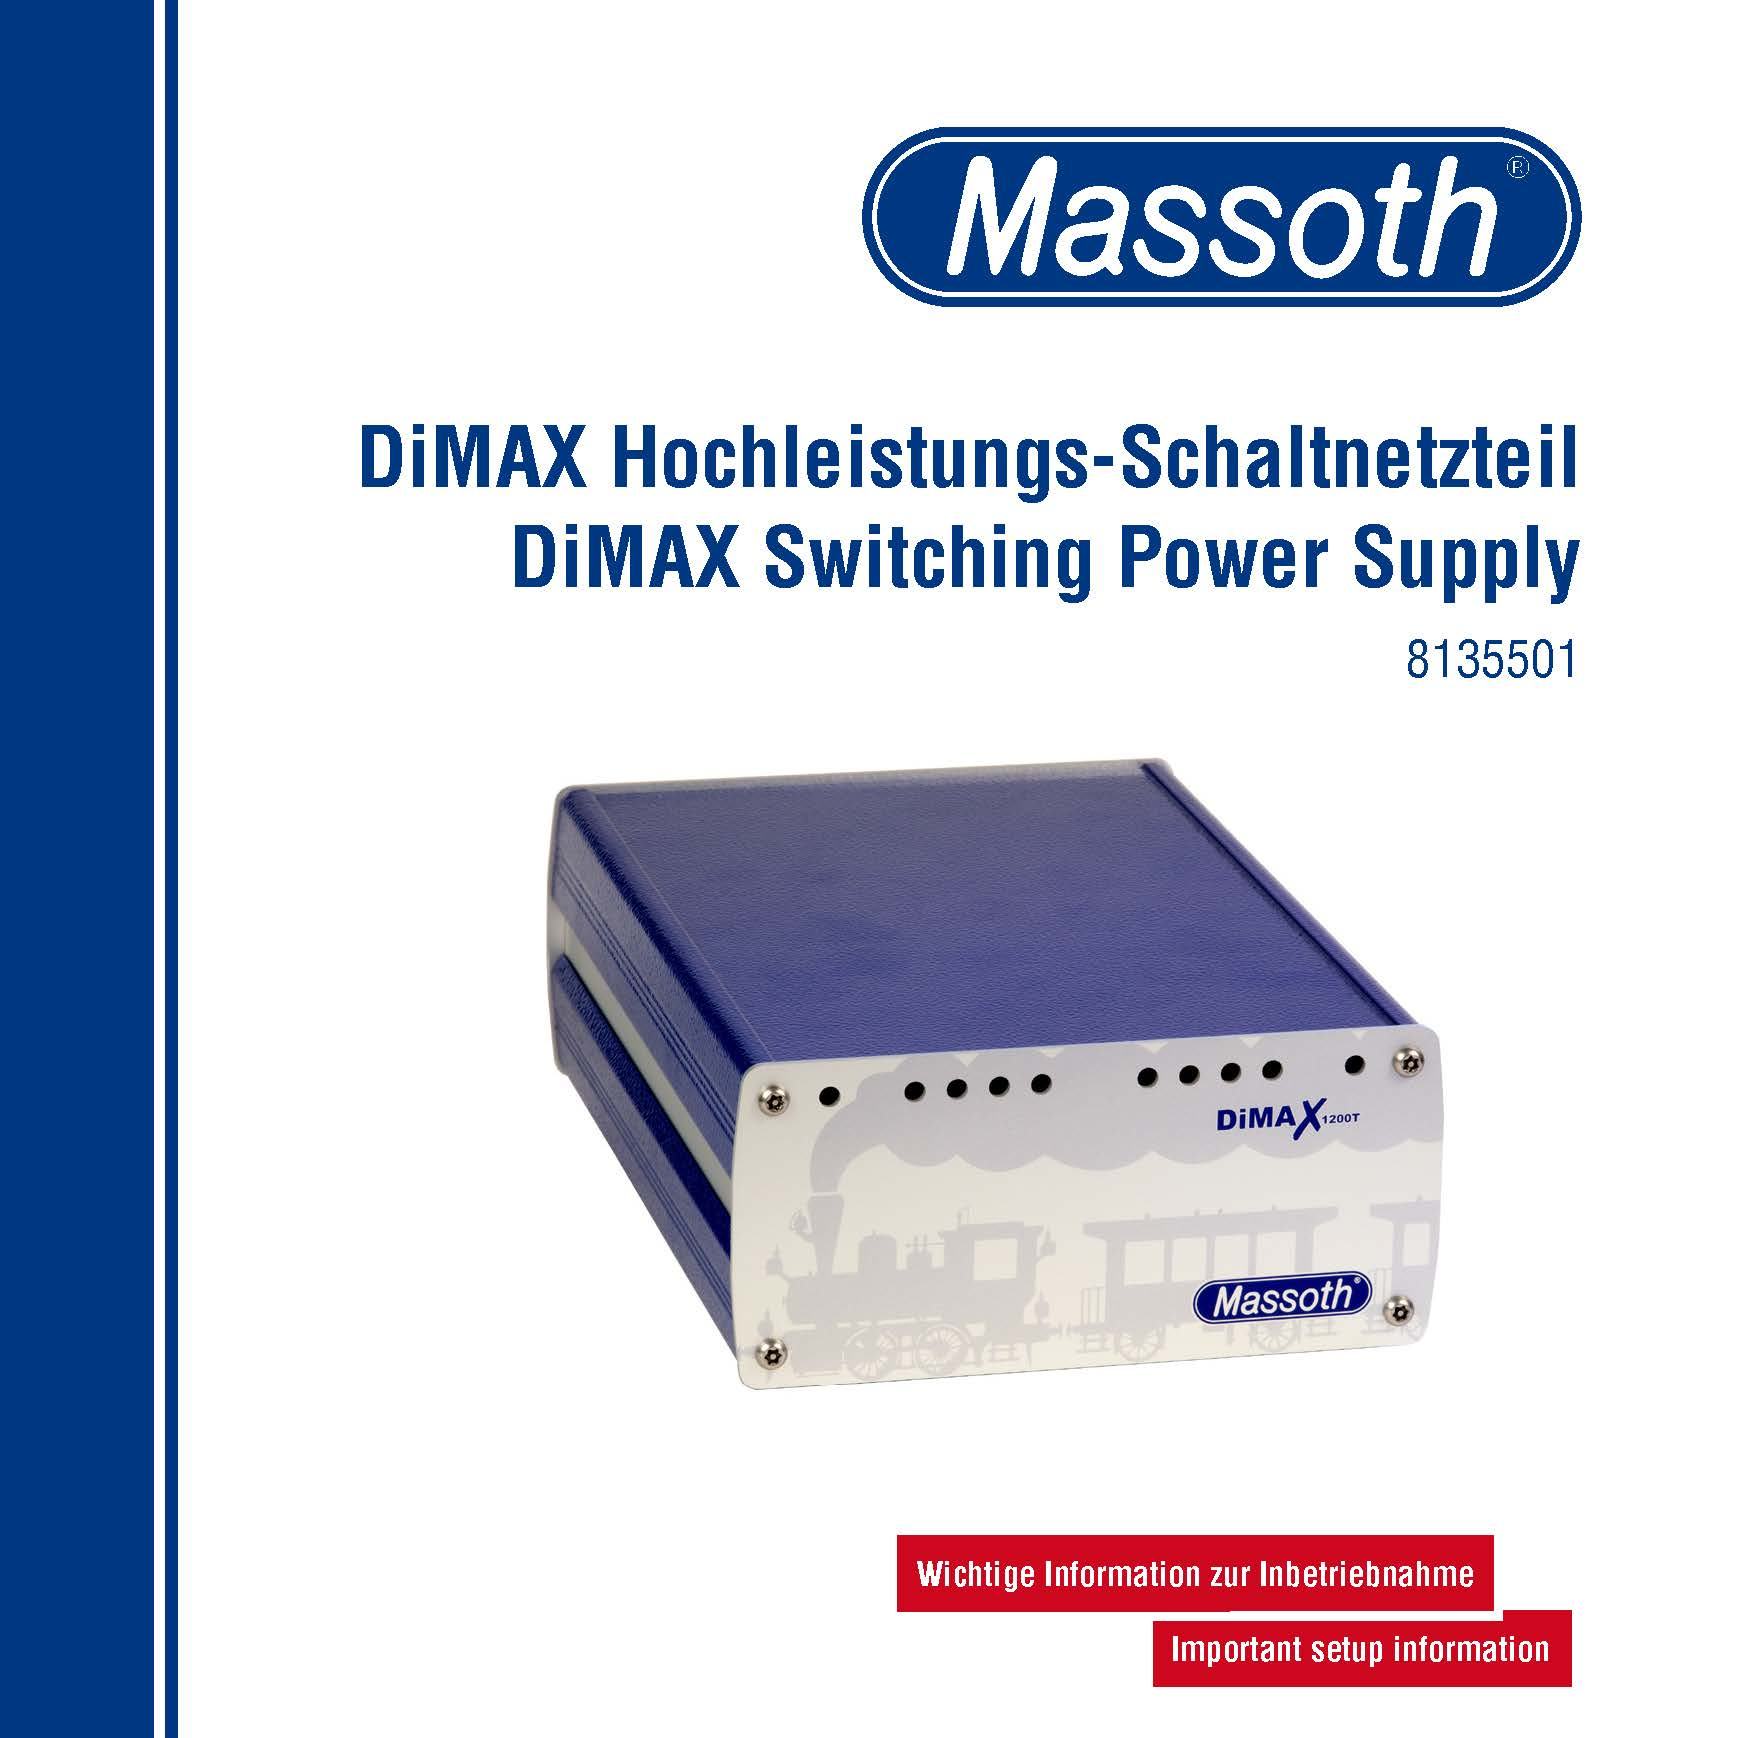 8135501 Massoth DiMax 1200T Switching Power Supply User's Manual 2014-09